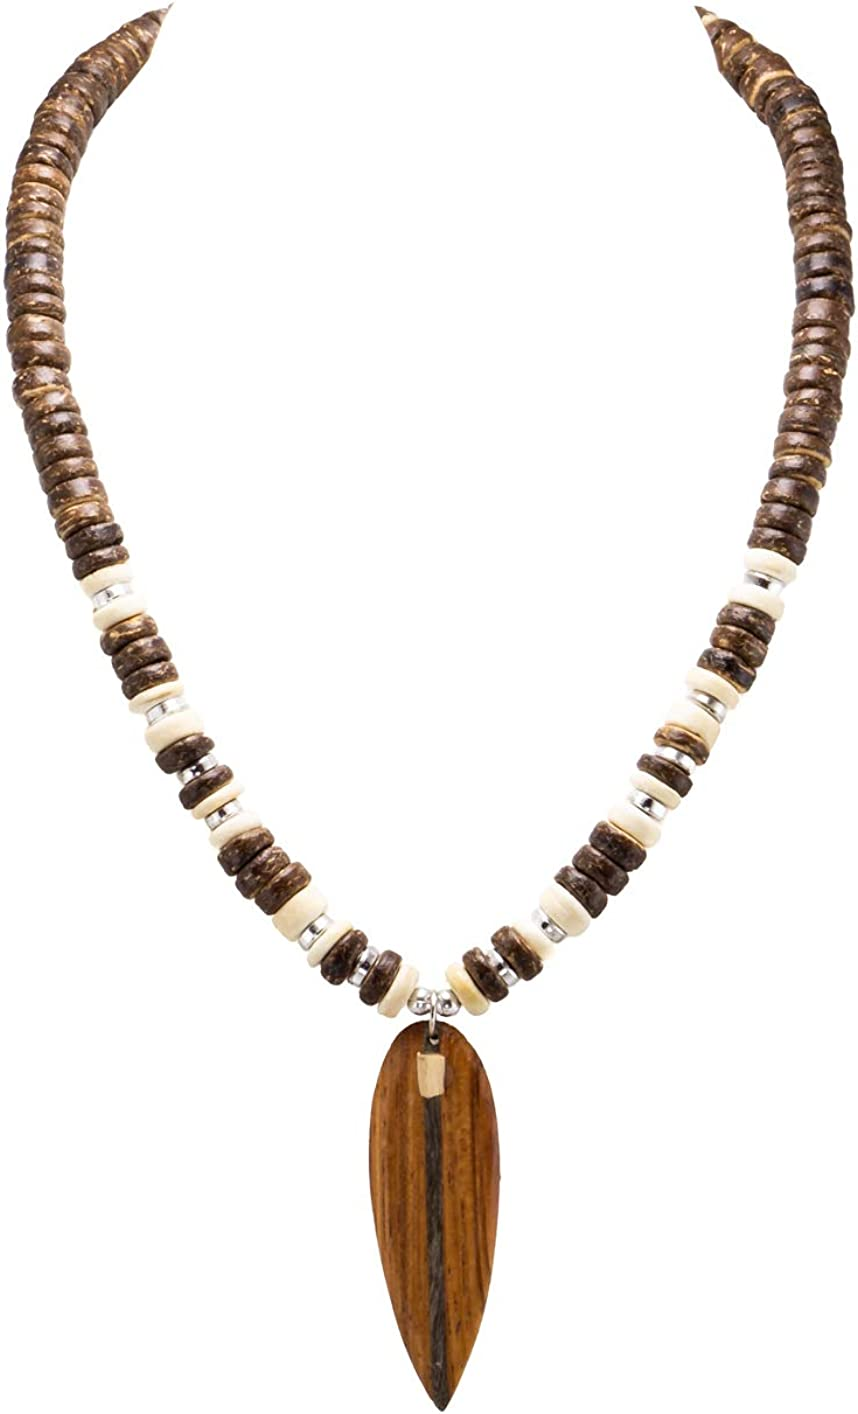 BlueRica Wood Surfboard Pendant on Coconut Wood Beads Necklace